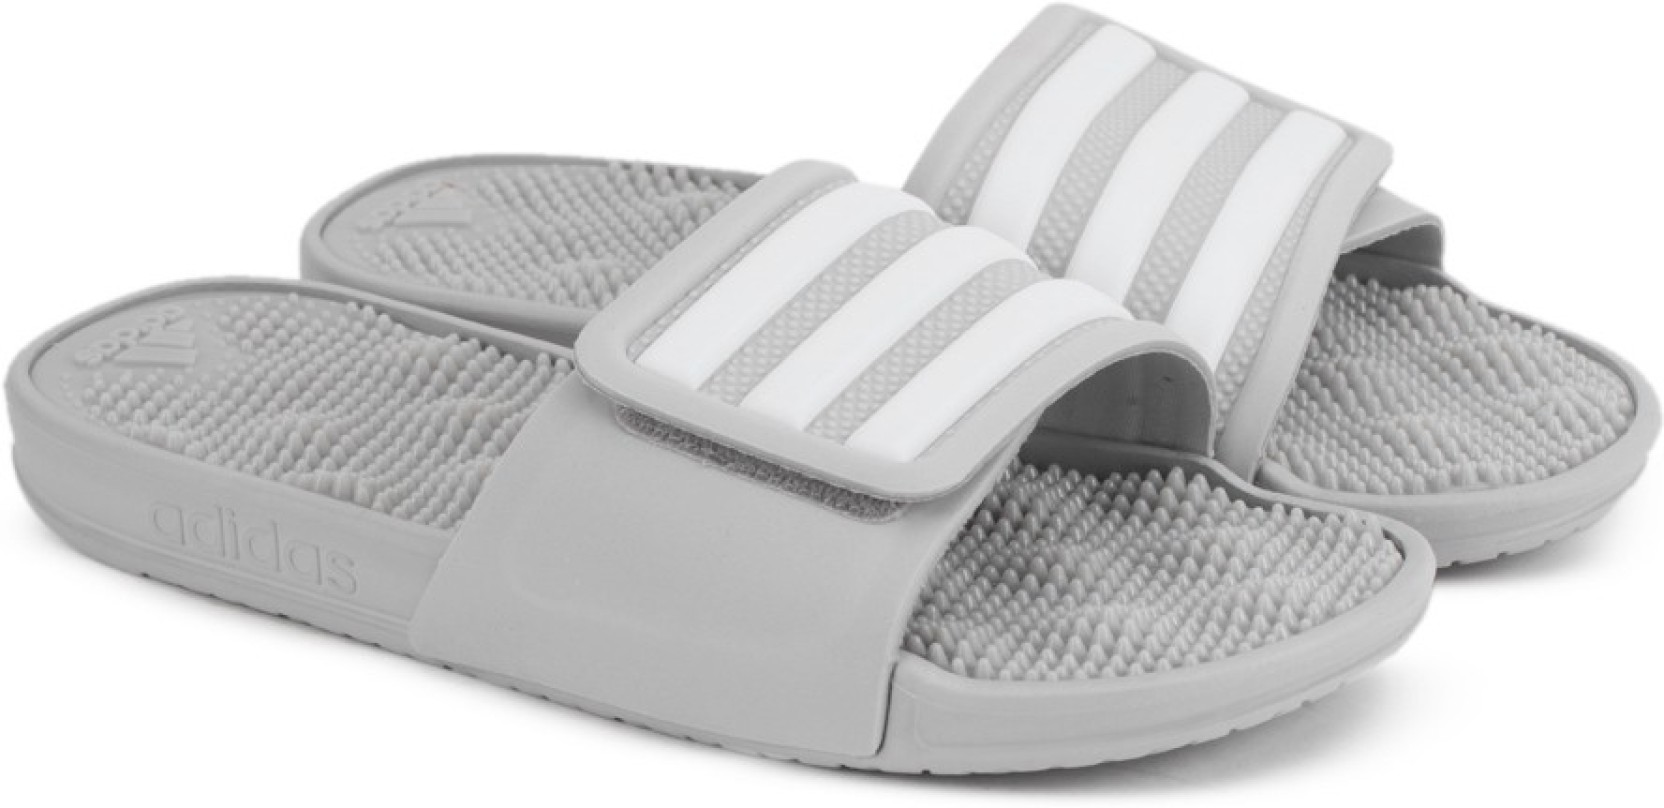 4ef88469bd53 ADIDAS ADISSAGE 2.0 STRIPES Slides - Buy GRETWO FTWWHT GRETWO Color ...